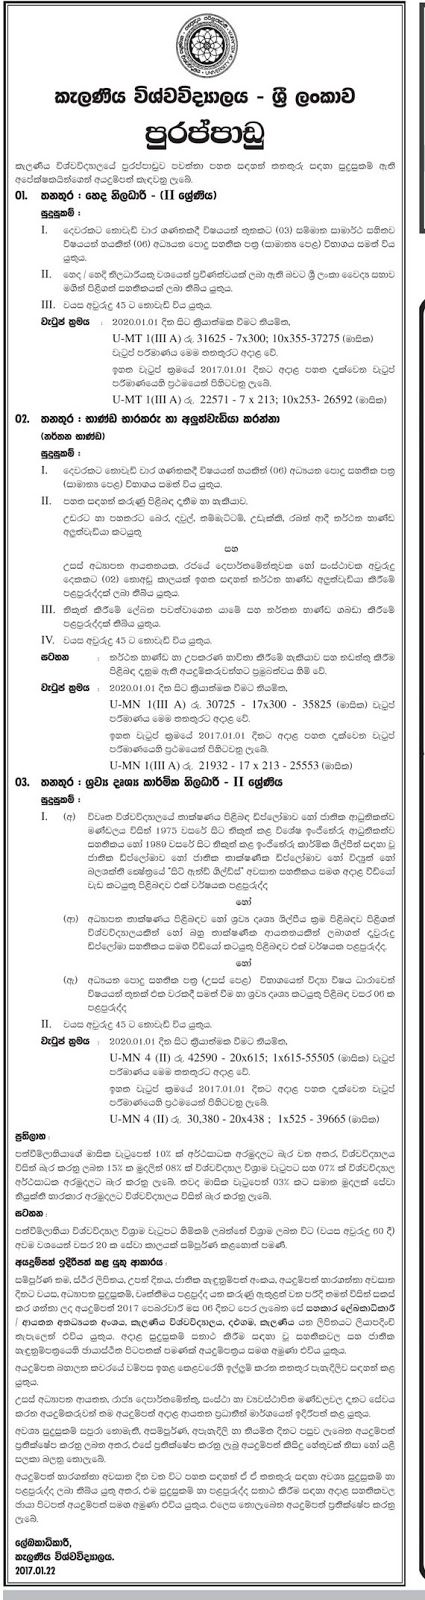 Sri Lankan Government Job Vacancies at University of Kelaniya for Nursing Officer, Items Trustee and Repairer, Audio Visual Technical Officer